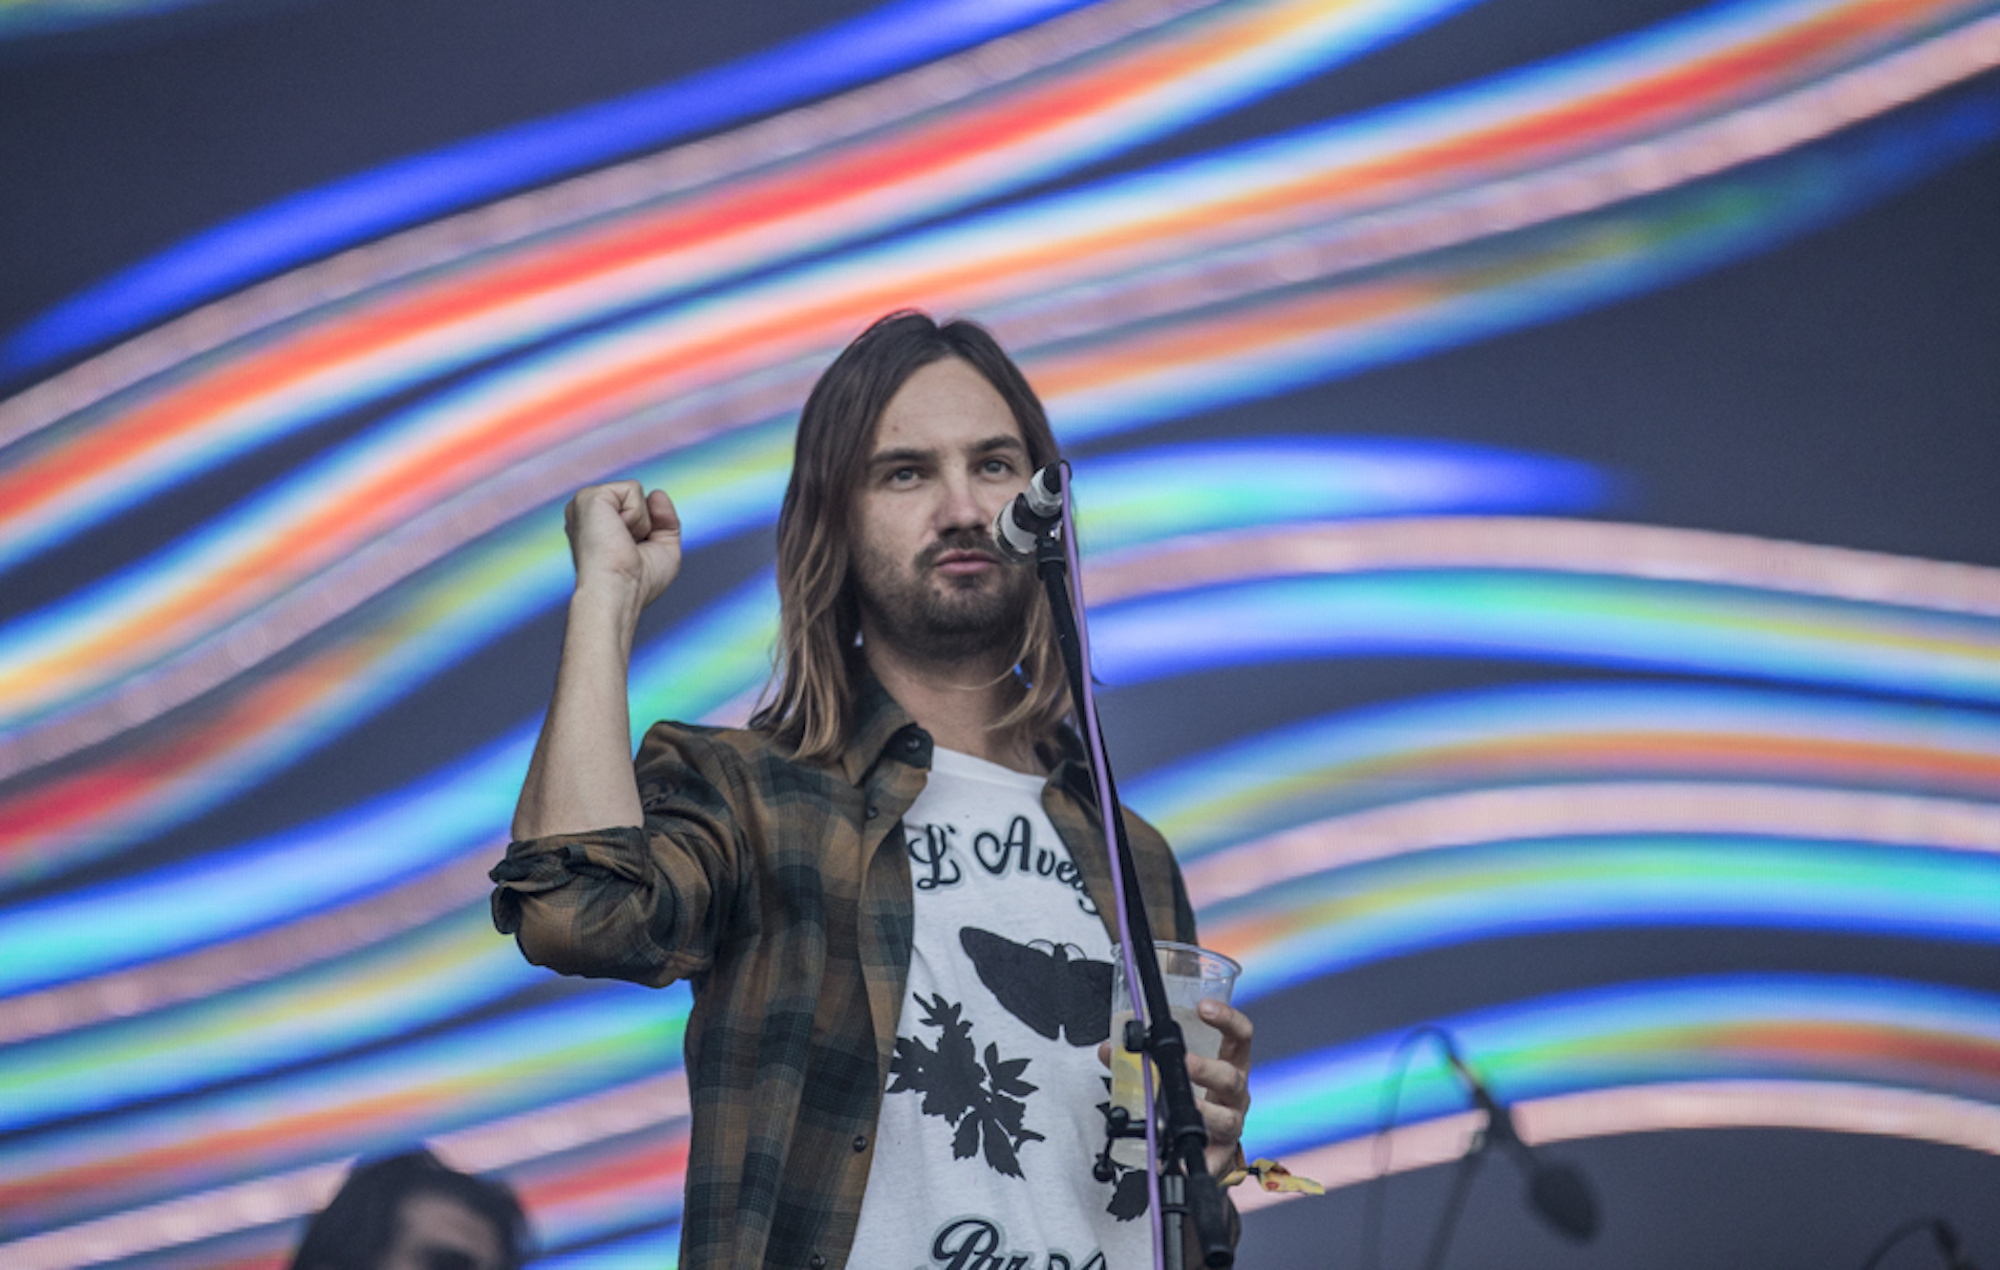 Tame Impala's Kevin Parker says he's channeling his inner-Gaga on new album and forgot to tell his band about headlining Coachella